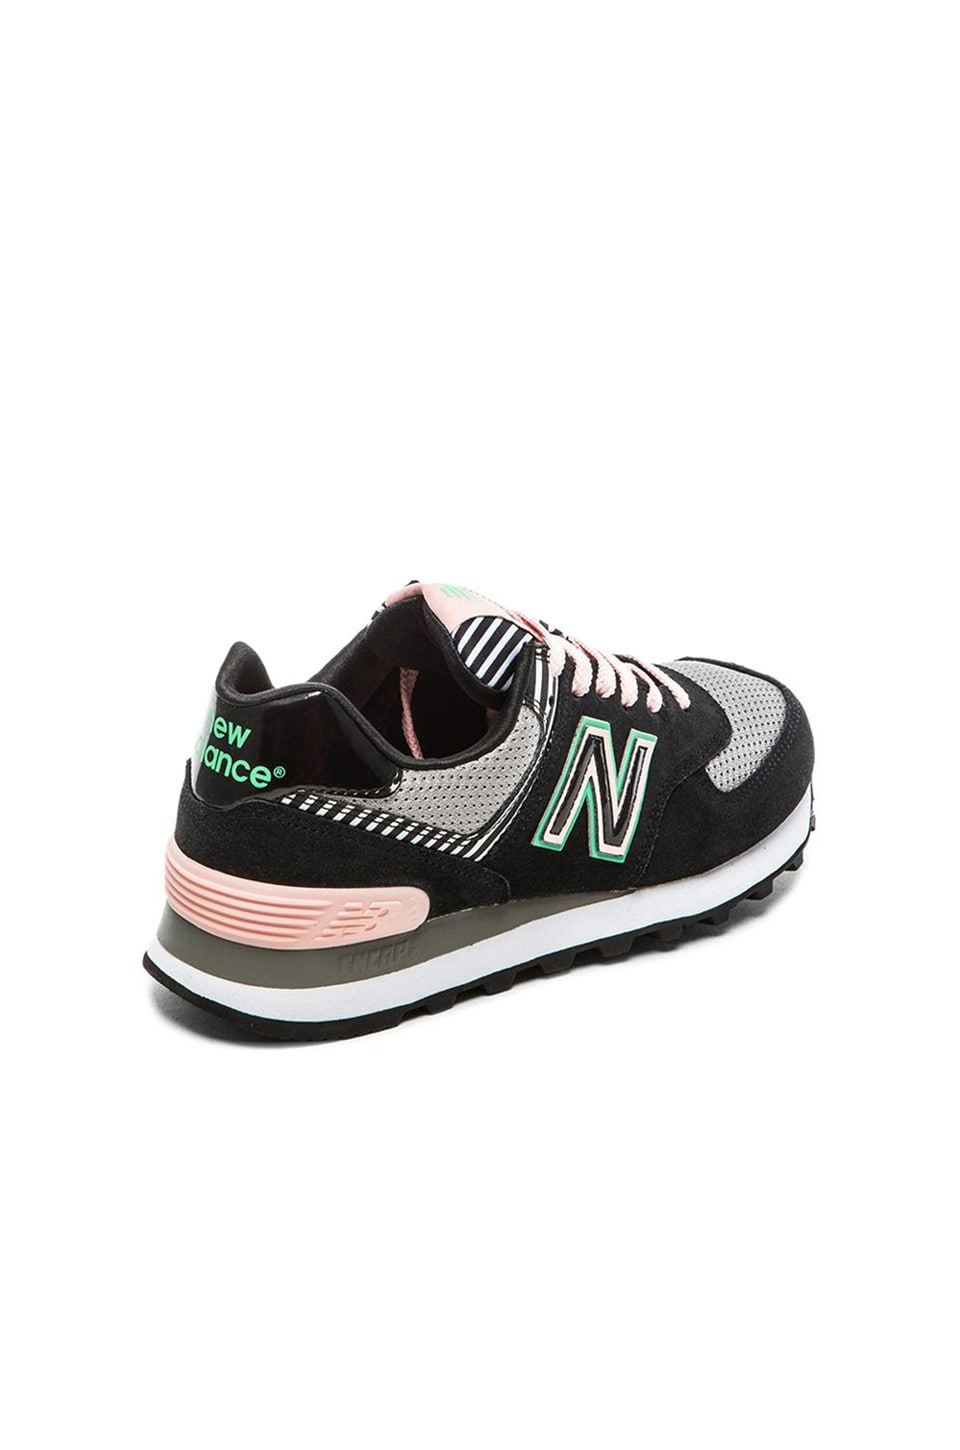 New Balance Promo Codes for November, Save with 13 active New Balance promo codes, coupons, and free shipping deals. 🔥 Today's Top Deal: (@Amazon) Up To 30% Off New Balance. On average, shoppers save $22 using New Balance coupons from downafileat.ga